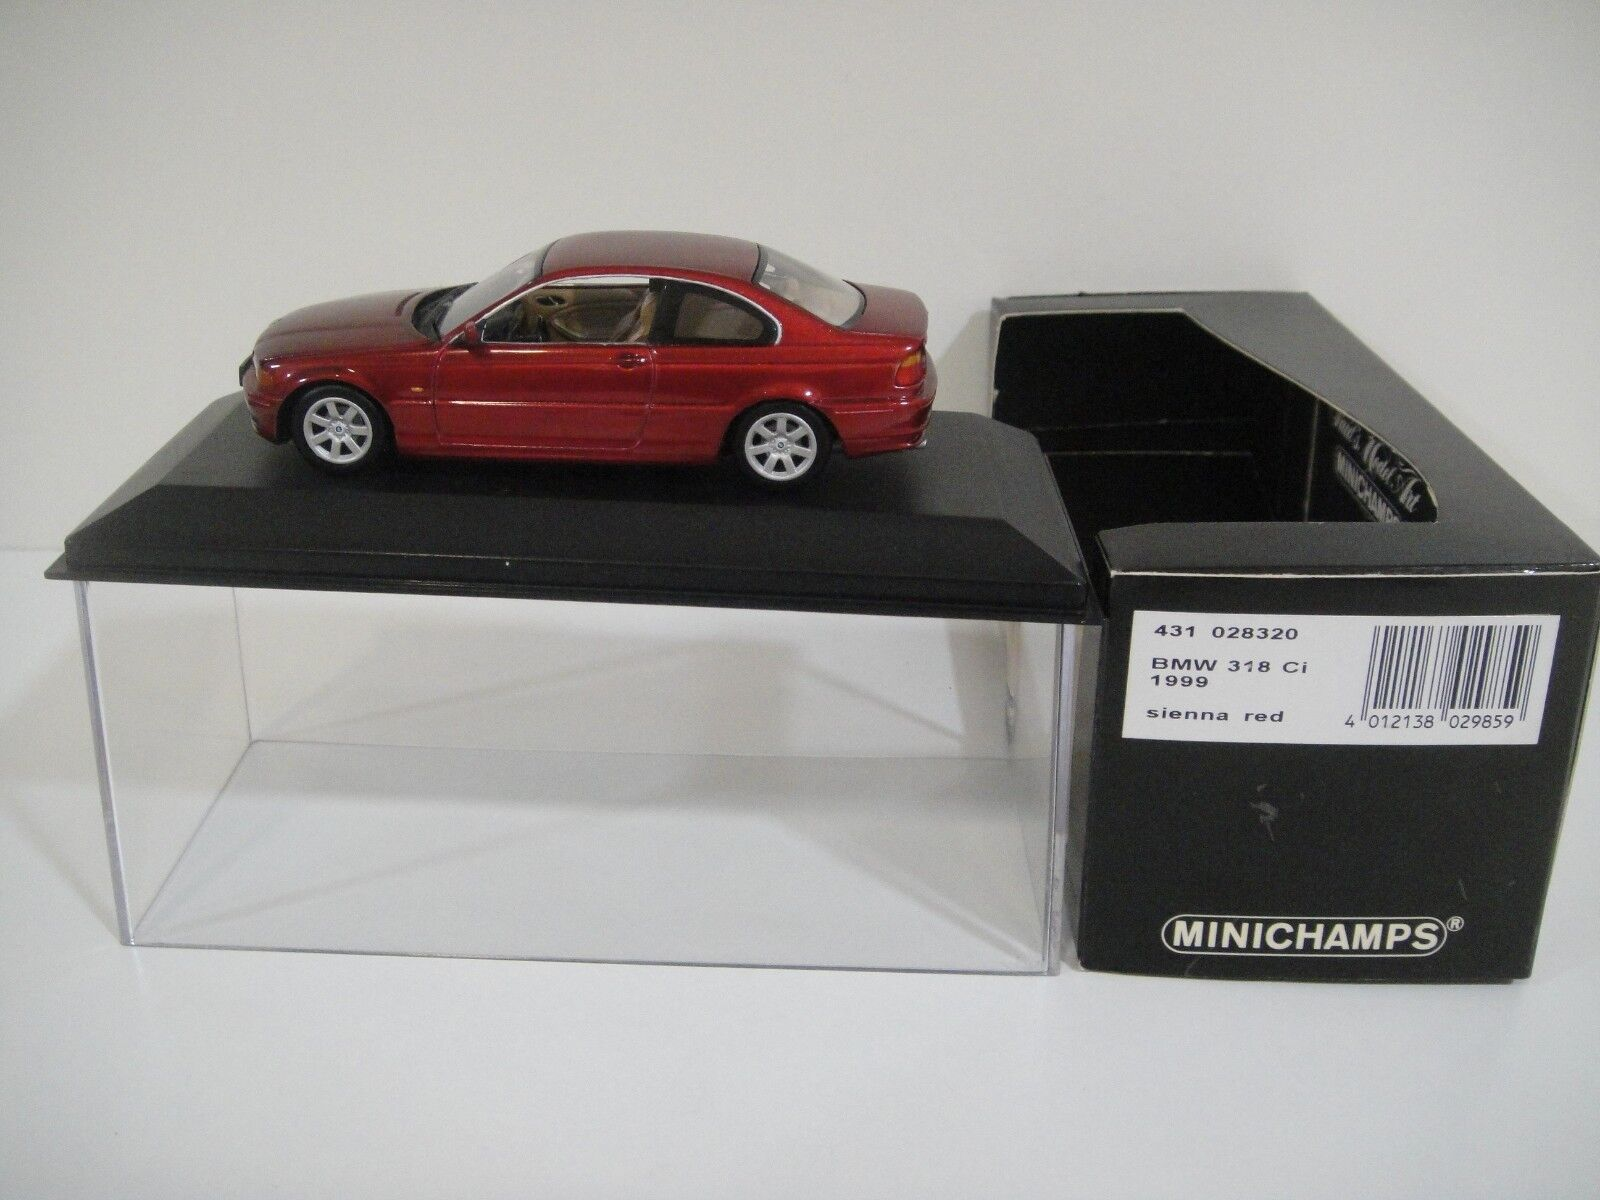 --1 43 MINICHAMPS. BMW 318 Ci. 1999 Sienna rouge.